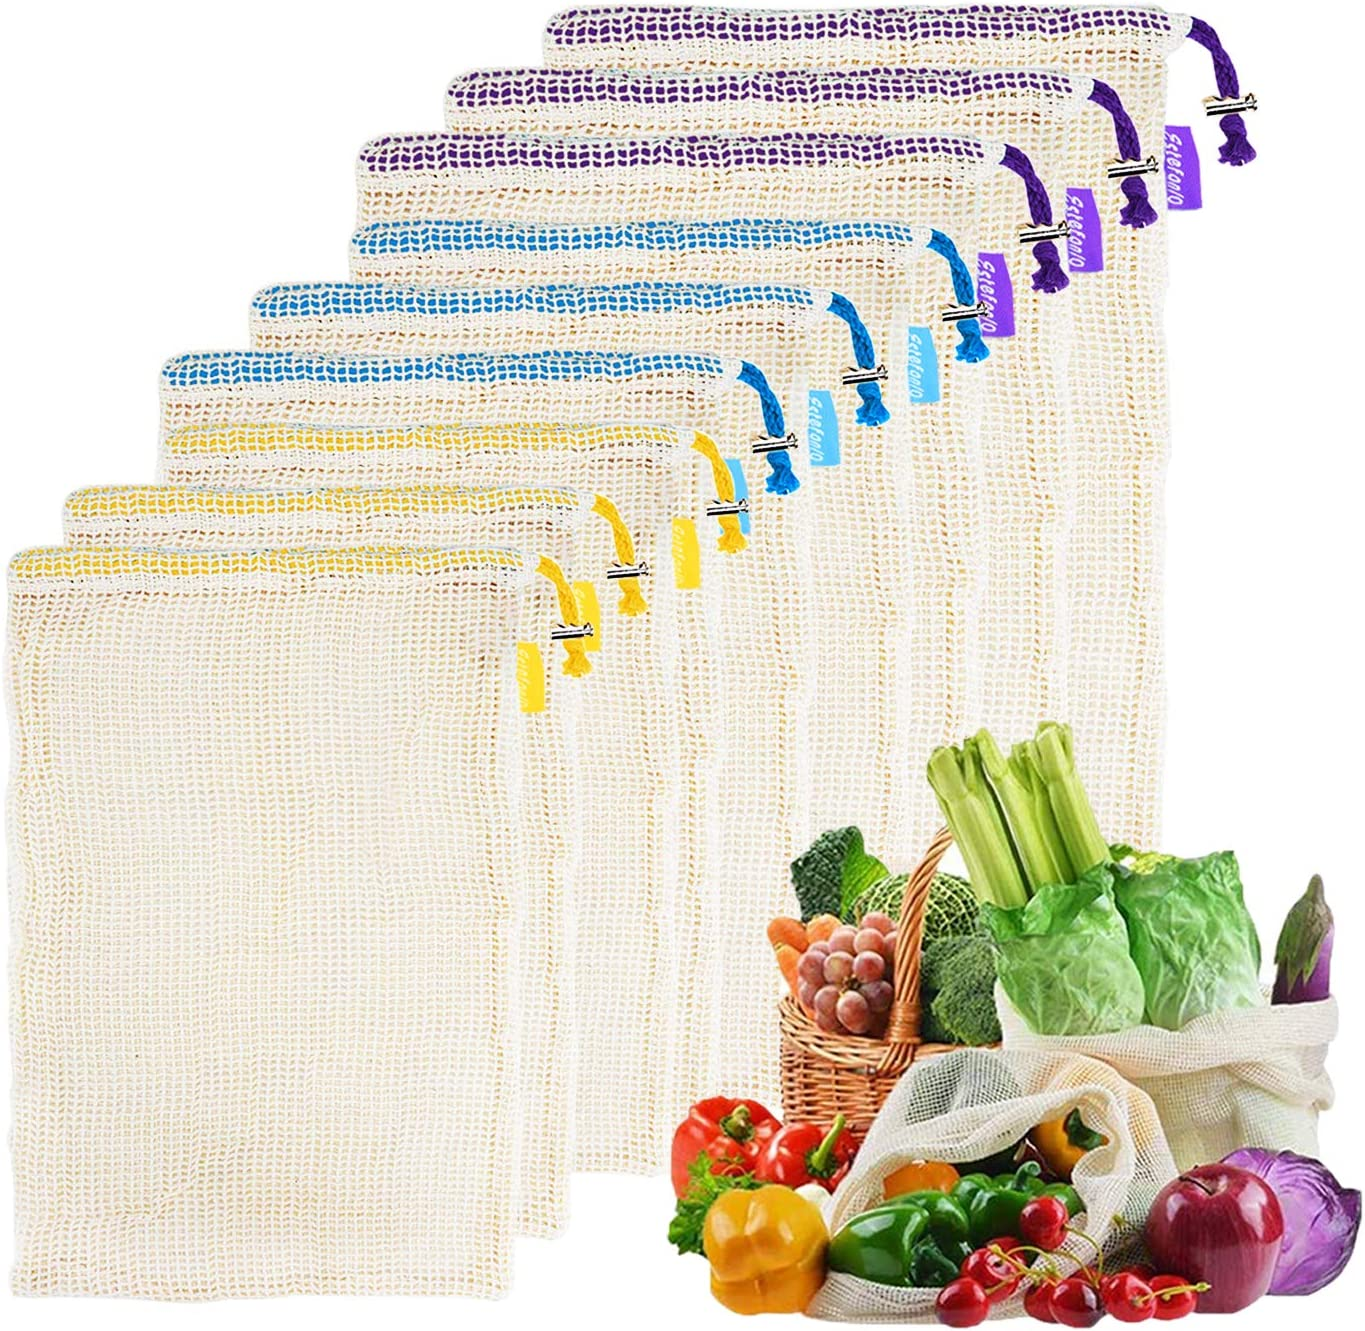 Estefanlo Premium Reusable Produce Bags Food Grade Washable Mesh Produce Bag Eco-Friendly Lightweight Grocery Bags for Grocery Shopping Storage Fruit Vegetable and Toys 3 Sizes (Set of 9 Cotton Bags)